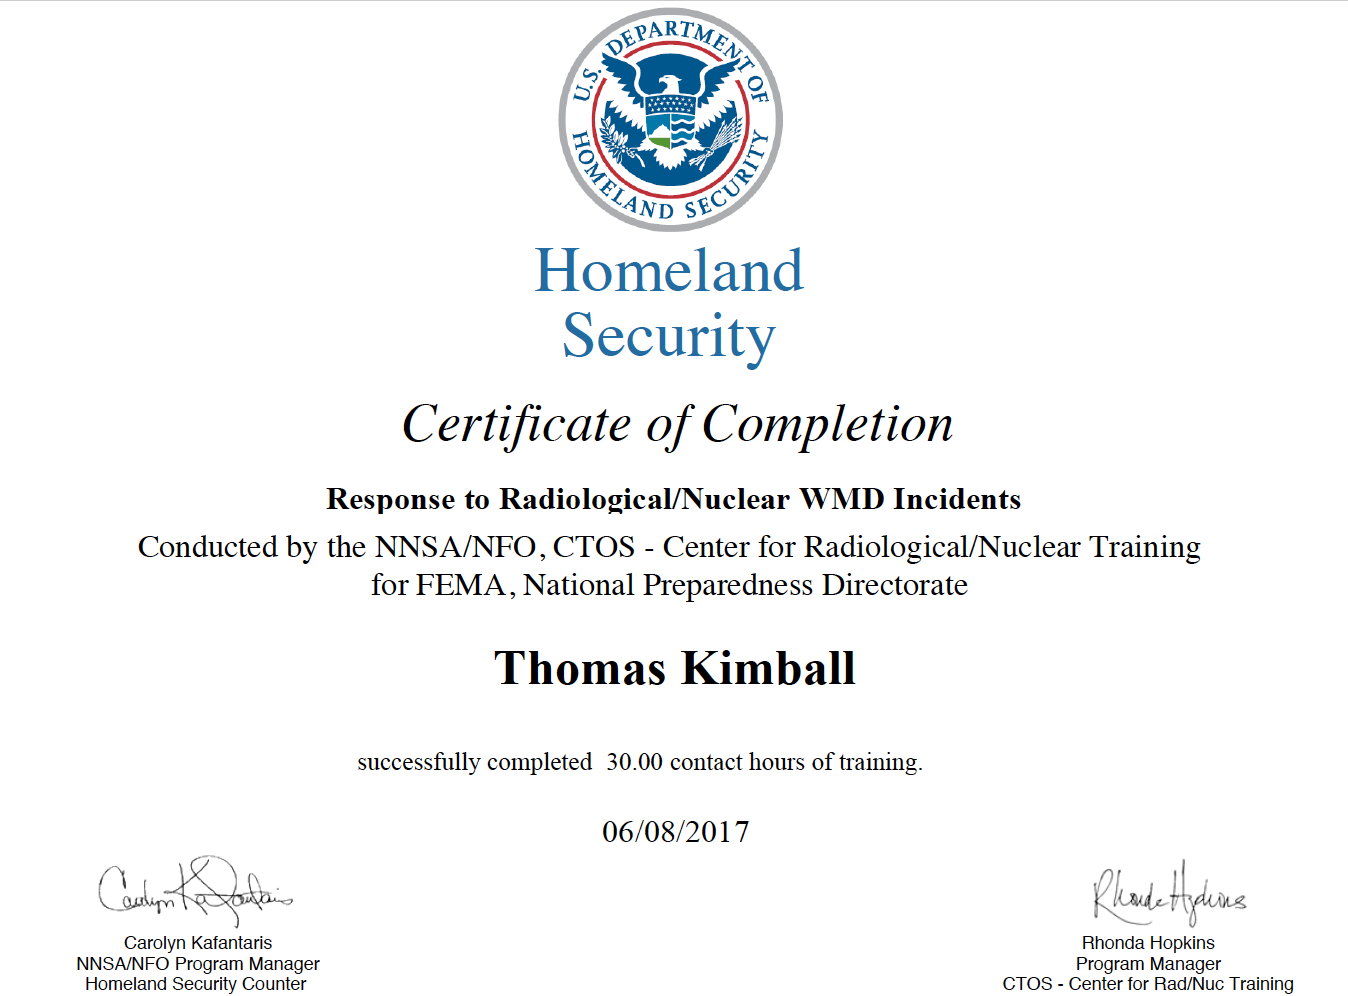 PER-354 Response to Radiological/Nuclear WMD Incidents Course